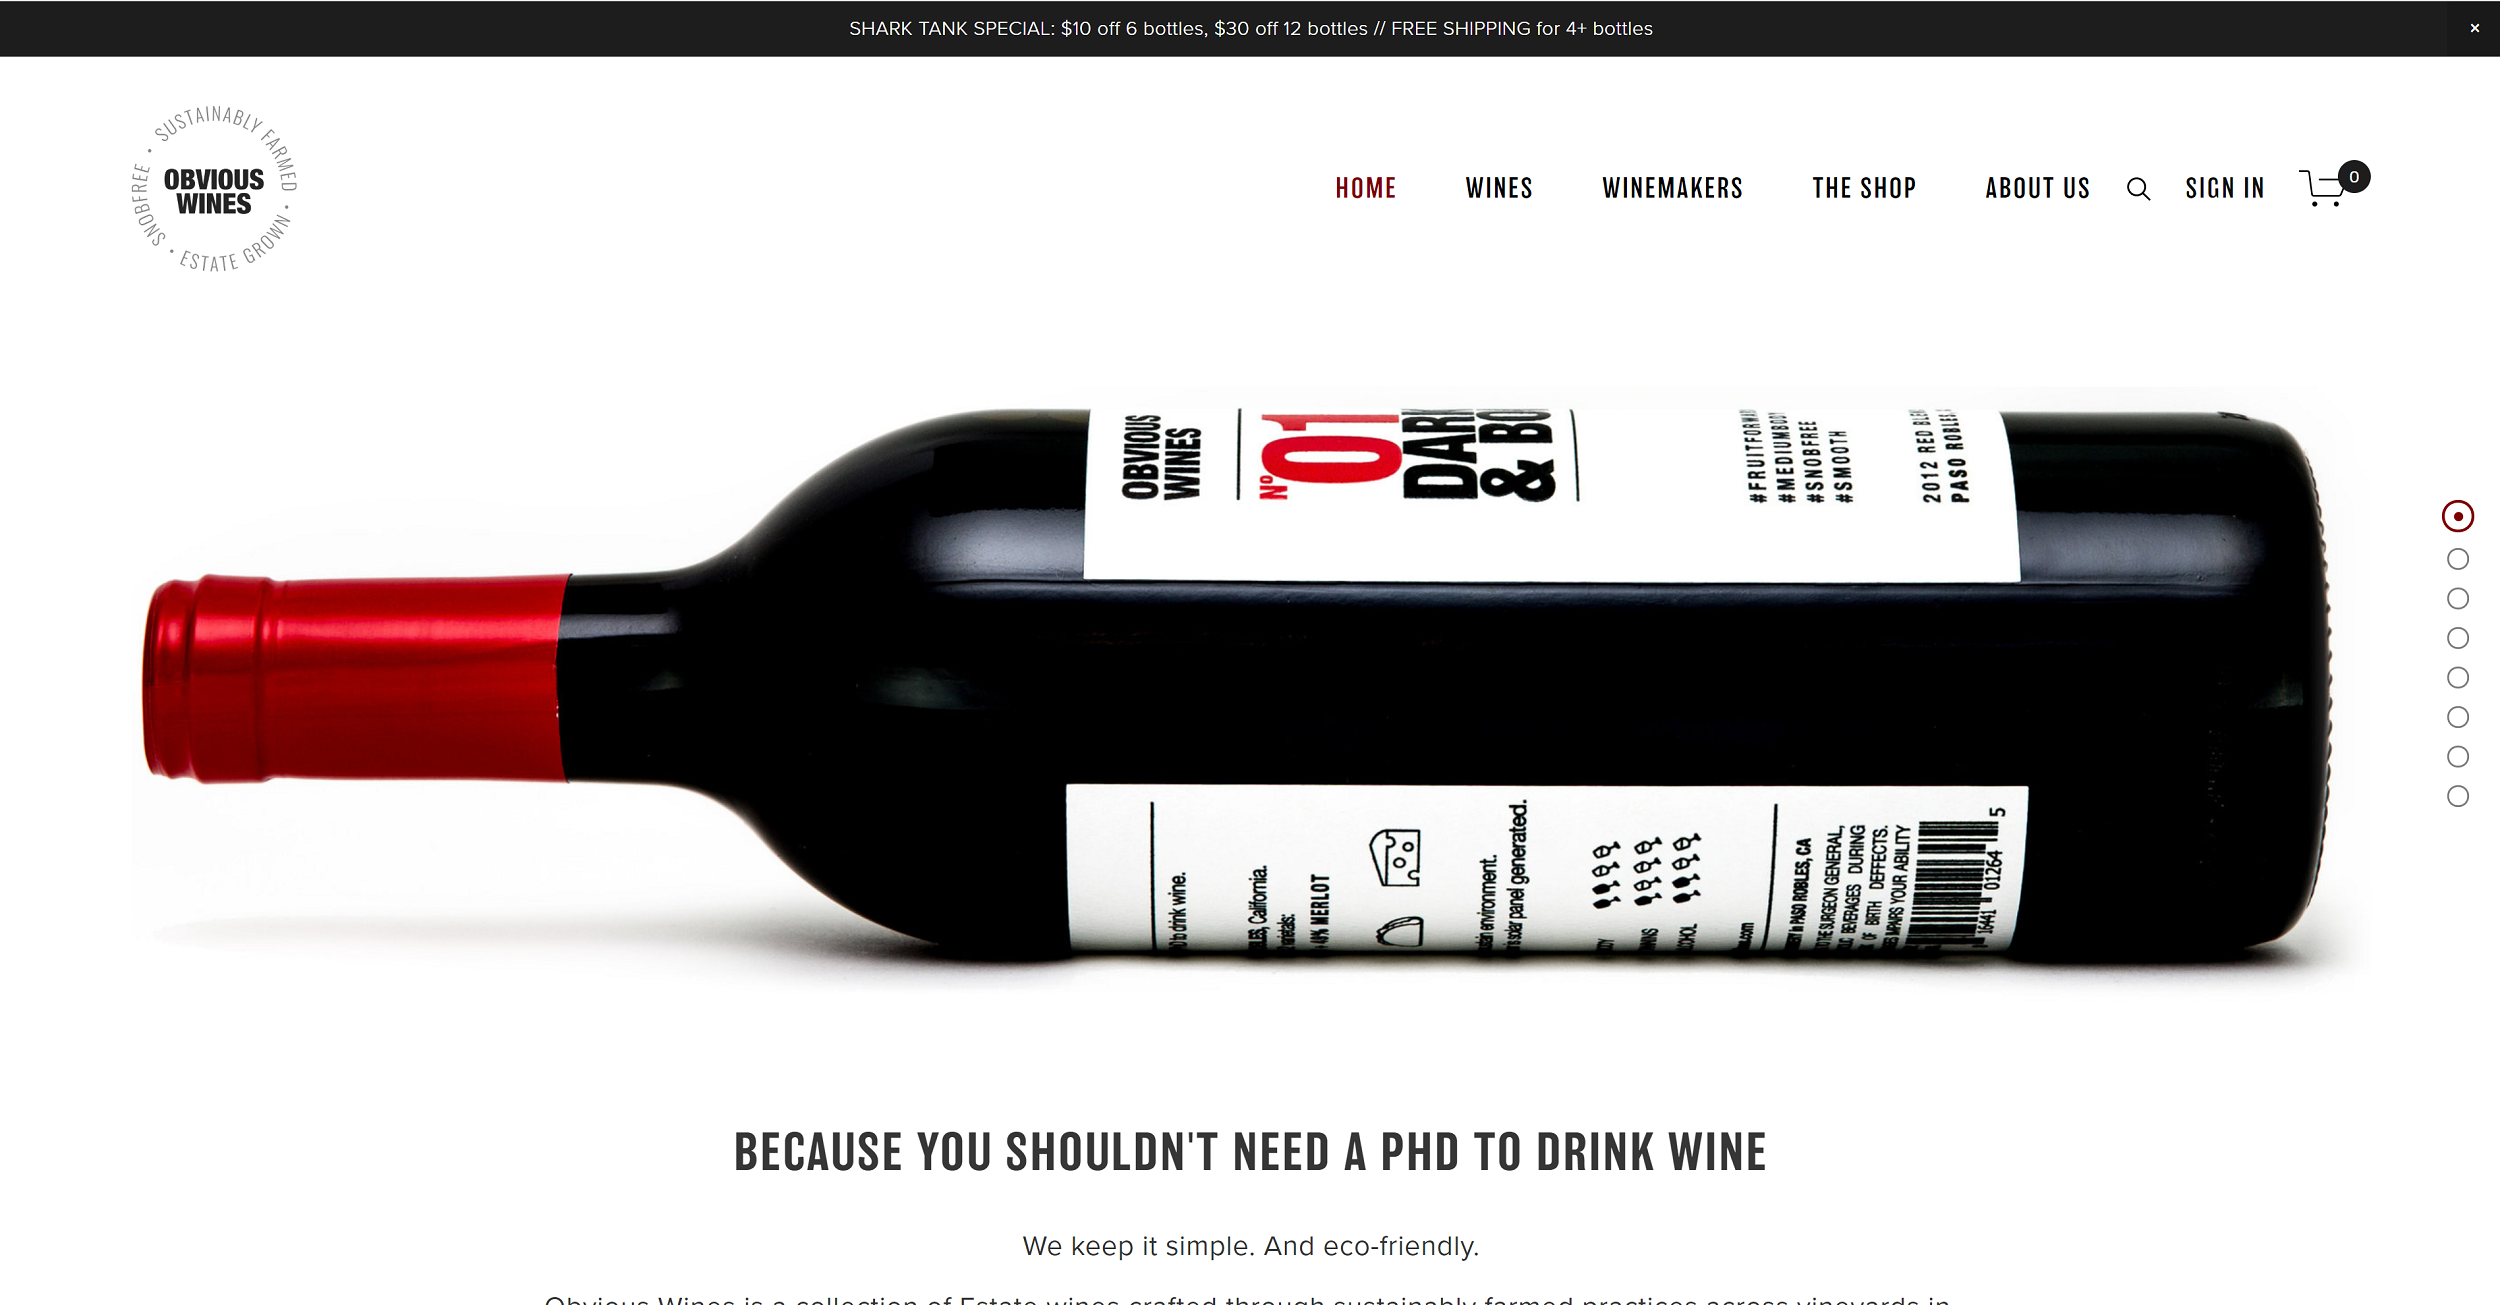 Belinda Briggs - obvious-wines-shark-tank-winner-squarespace-ecommerce-design.png